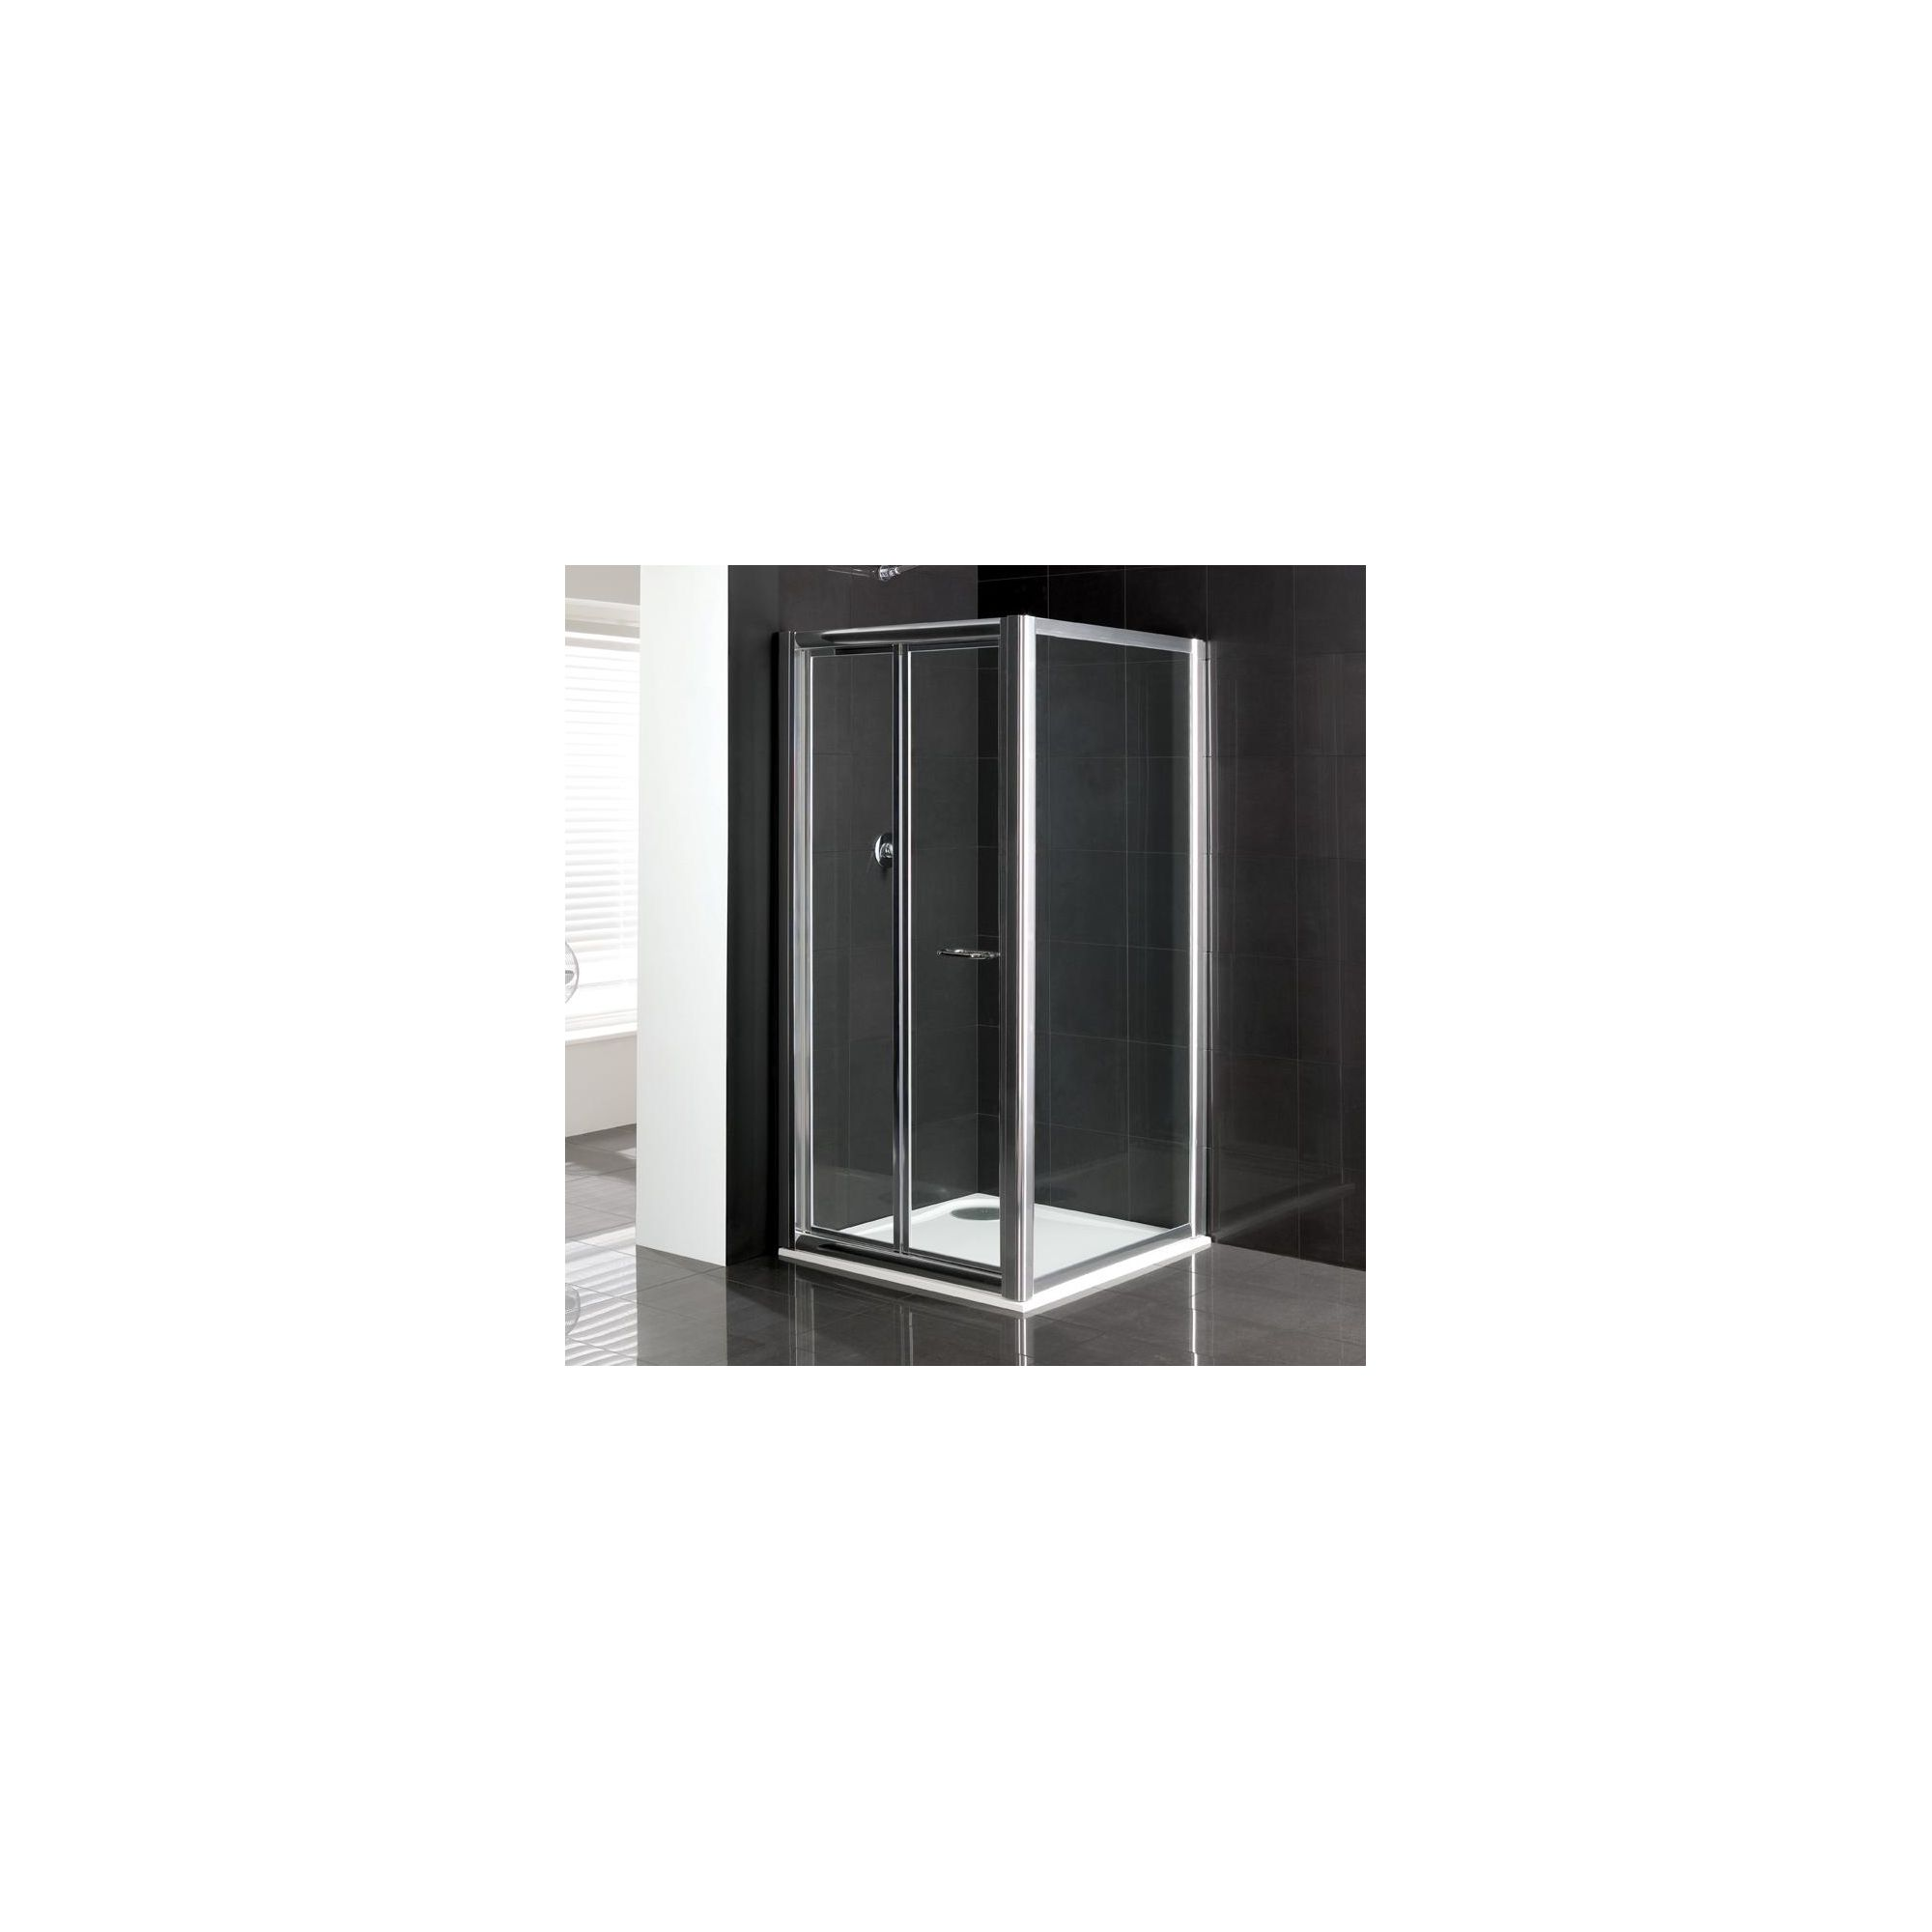 Duchy Elite Silver Bi-Fold Door Shower Enclosure with Towel Rail, 800mm x 700mm, Standard Tray, 6mm Glass at Tesco Direct